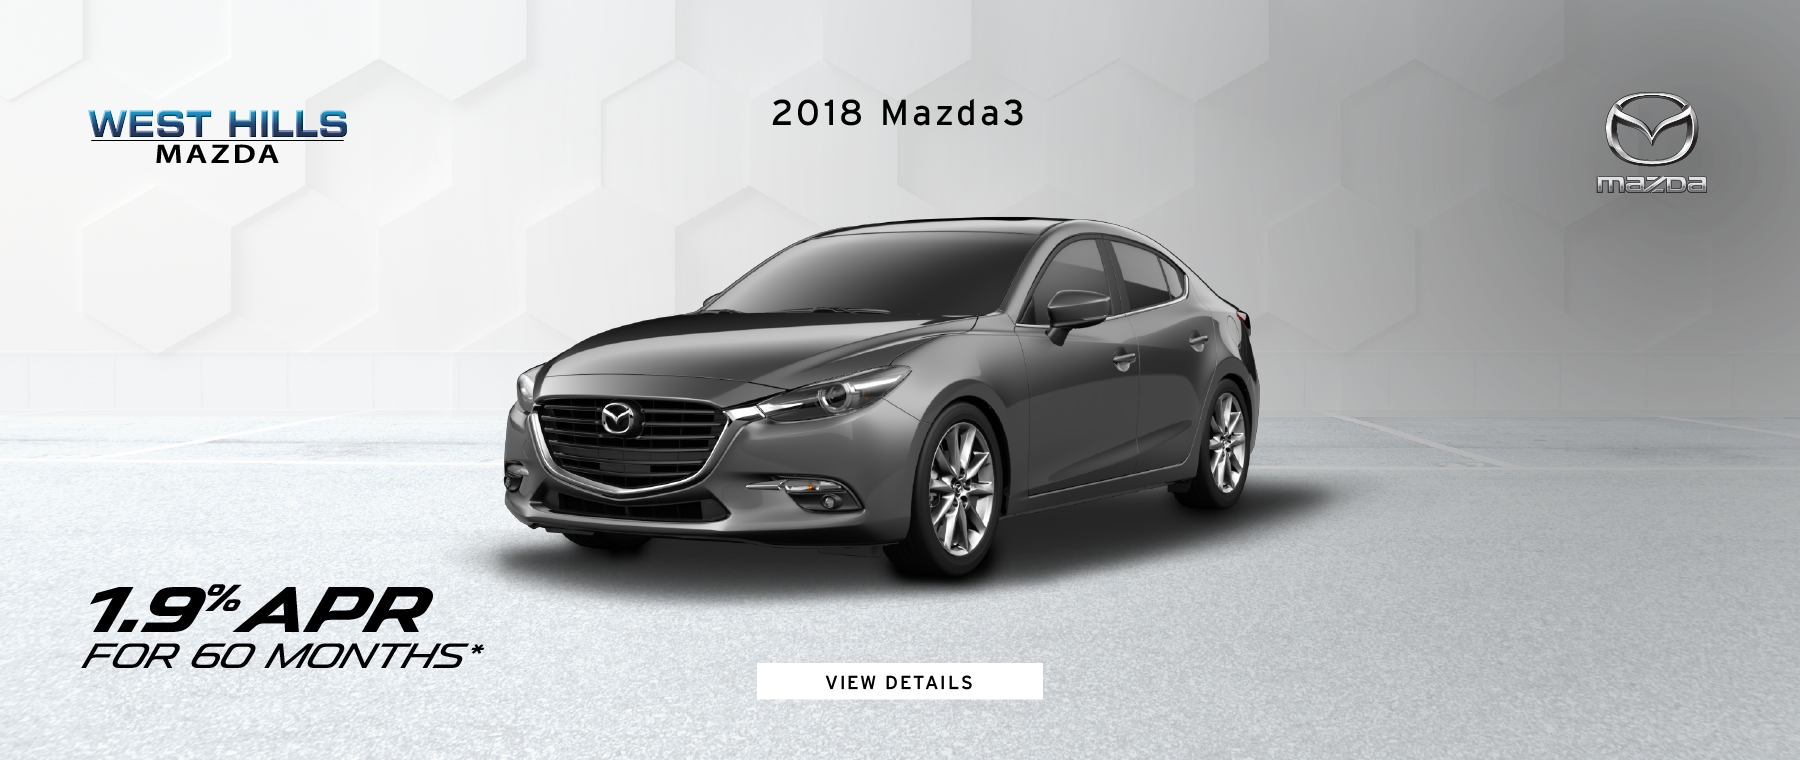 2018 Mazda3 1.9% APR for 60mos.* *Valid on any new 2018 Mazda3. 1.9% APR for 60 mos. Subject to credit approval through participating lender – not all will qualify. Down payment and other factors may affect qualification. Valid on VIN: 3MZBN1L32JM254486. MSRP starting at $22,785. 60 months at $17.53 per month per $1000 financed with $0 down. A negotiable dealer documentary service fee of up to $150 may be added to the sale price or capitalized cost. Excludes taxes, tags, registration and title, insurance and dealer charges. Offer Expires: 3/31/2019.